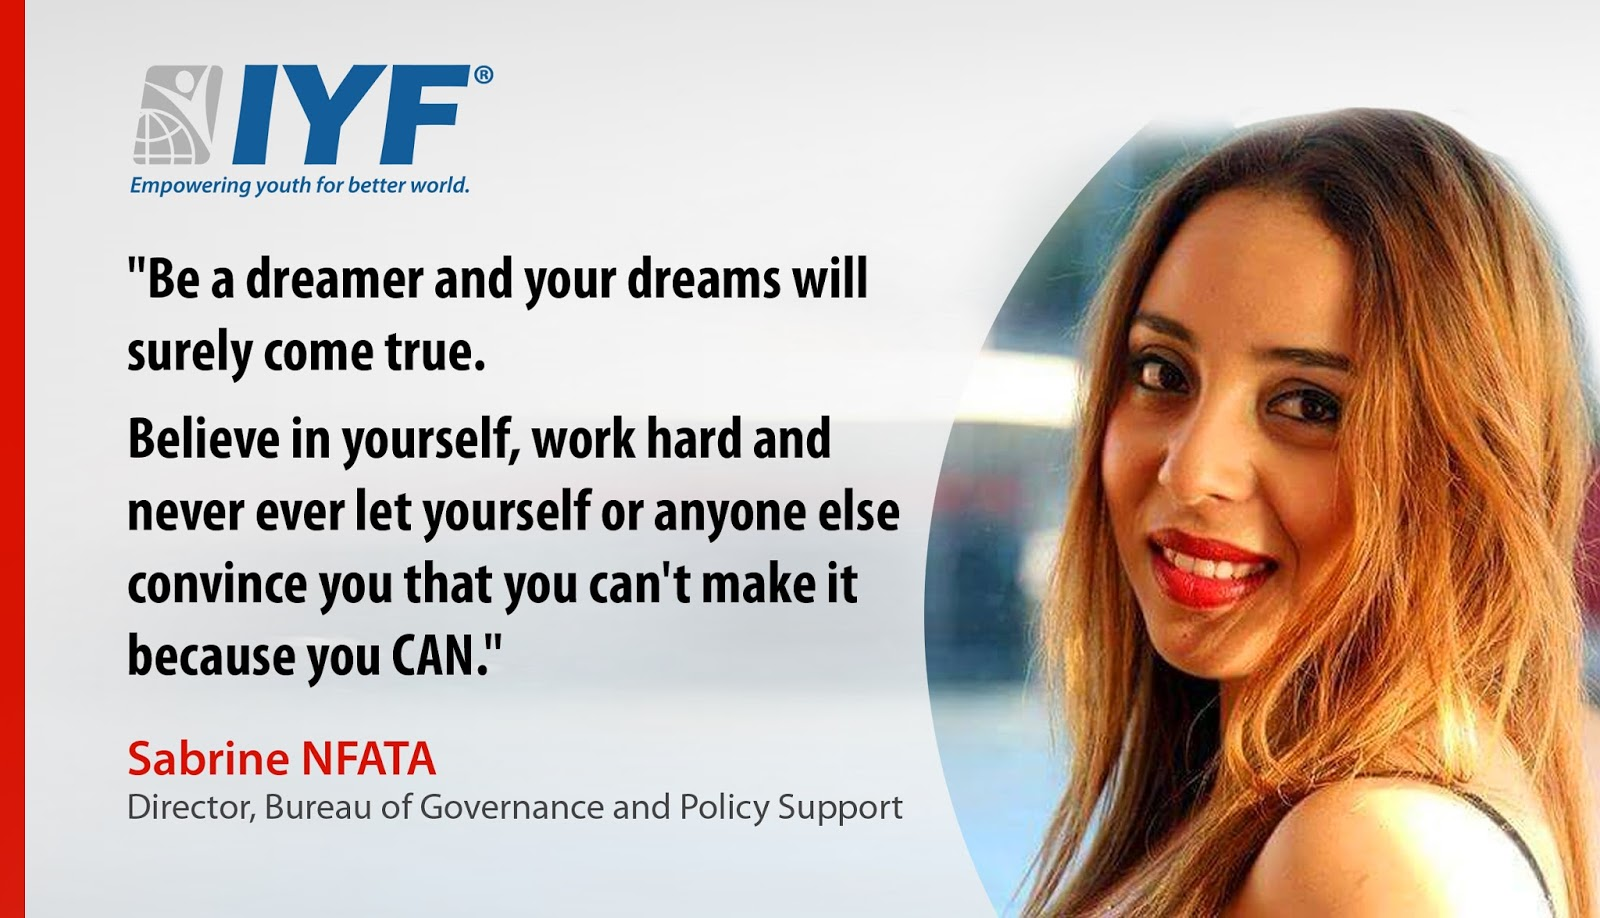 Sabrine Nfata, IYF Director of Bureau of Governance & Policy Support